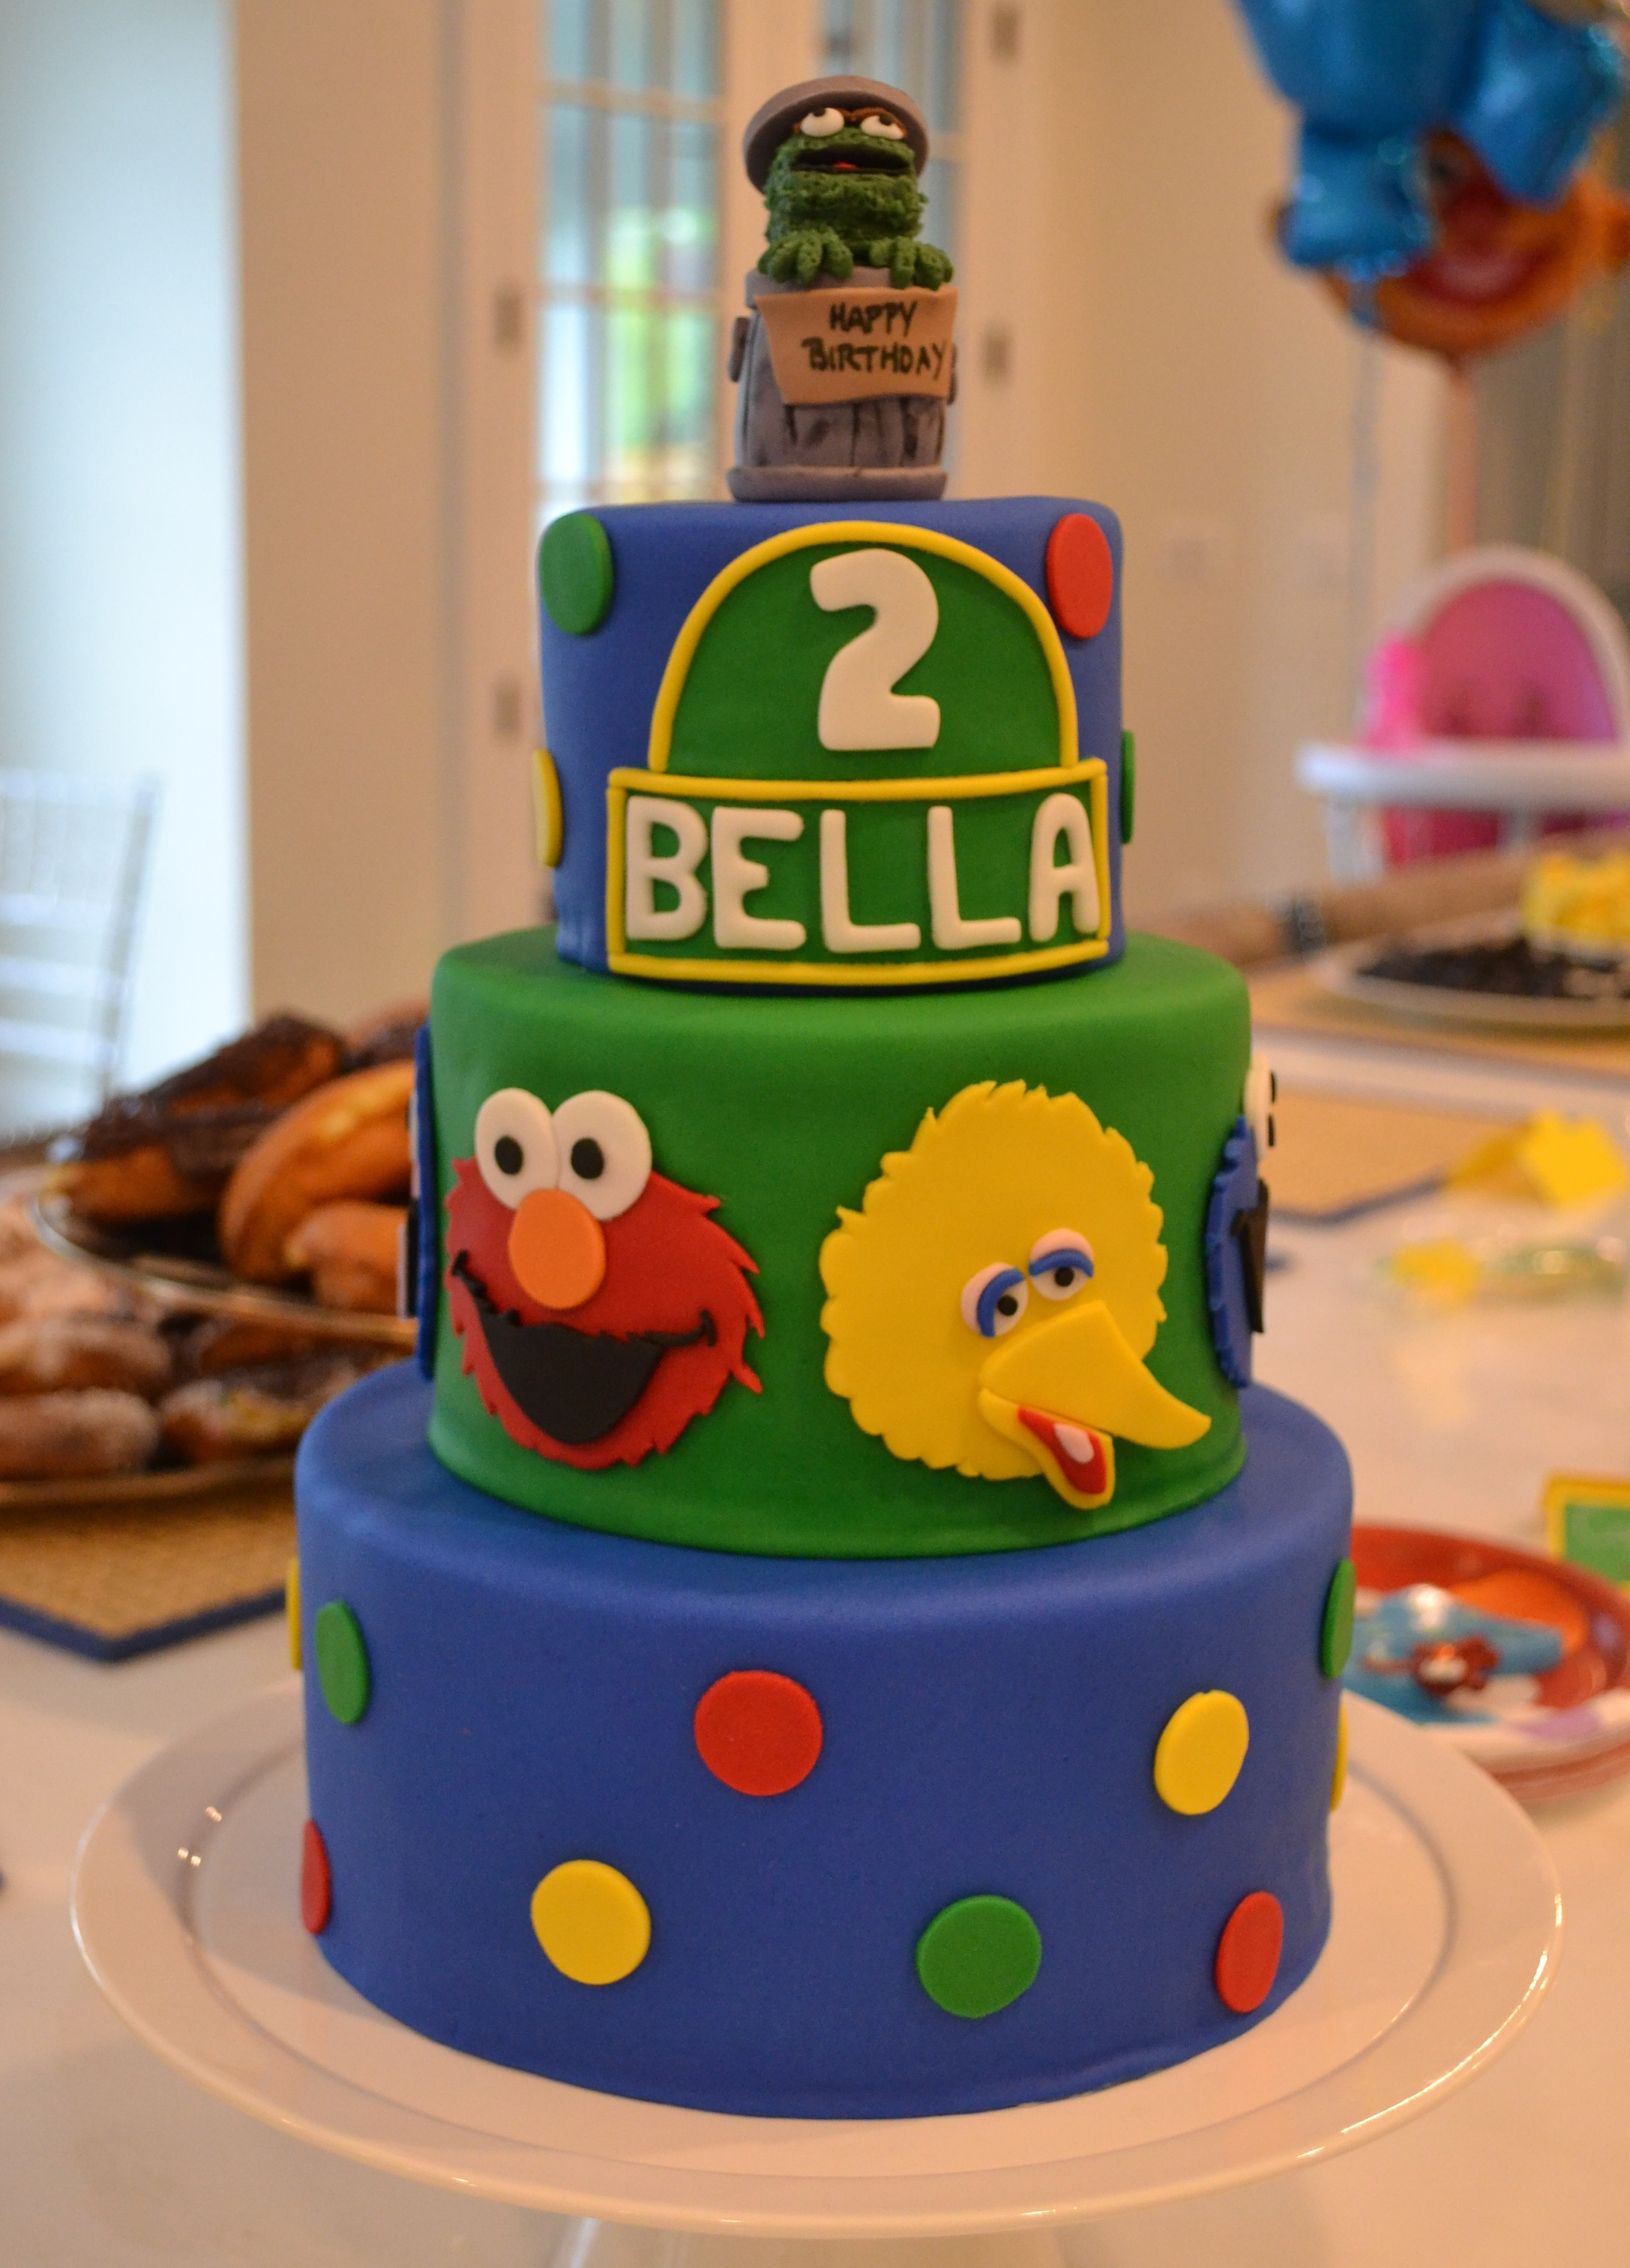 Groovy Sesame Street Cake Personalised Birthday Cards Paralily Jamesorg